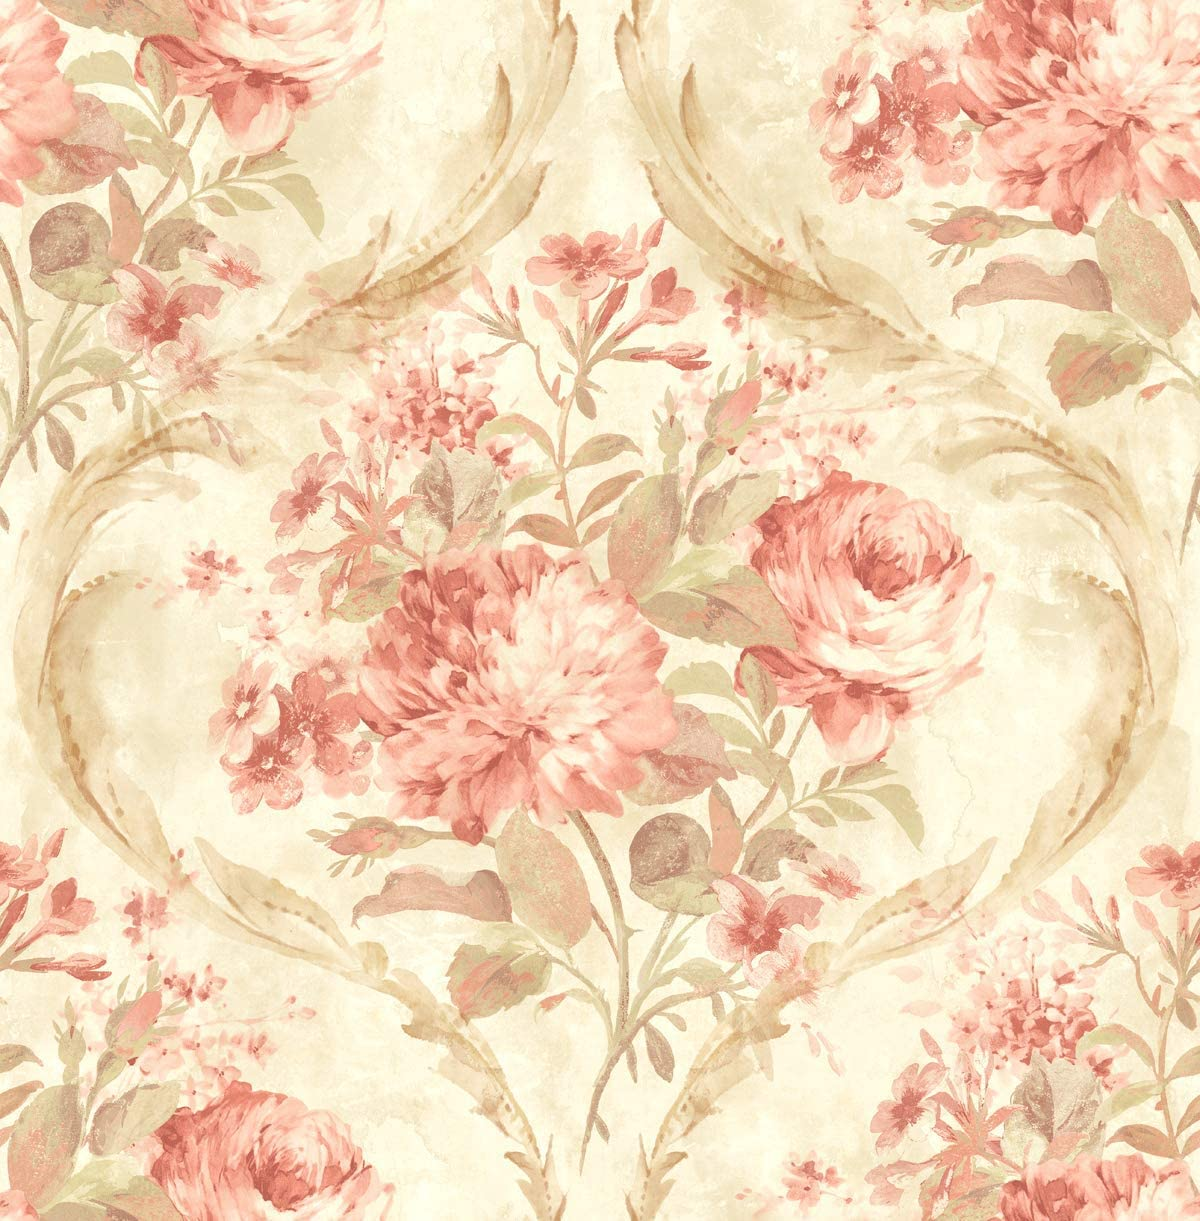 Pink Floral Wallpaper Chinoiserie Wallpaper Rose Wallpaper Vintage Floral Wallpaper Gold Pink Wallpaper Rose Gold Wallpaper